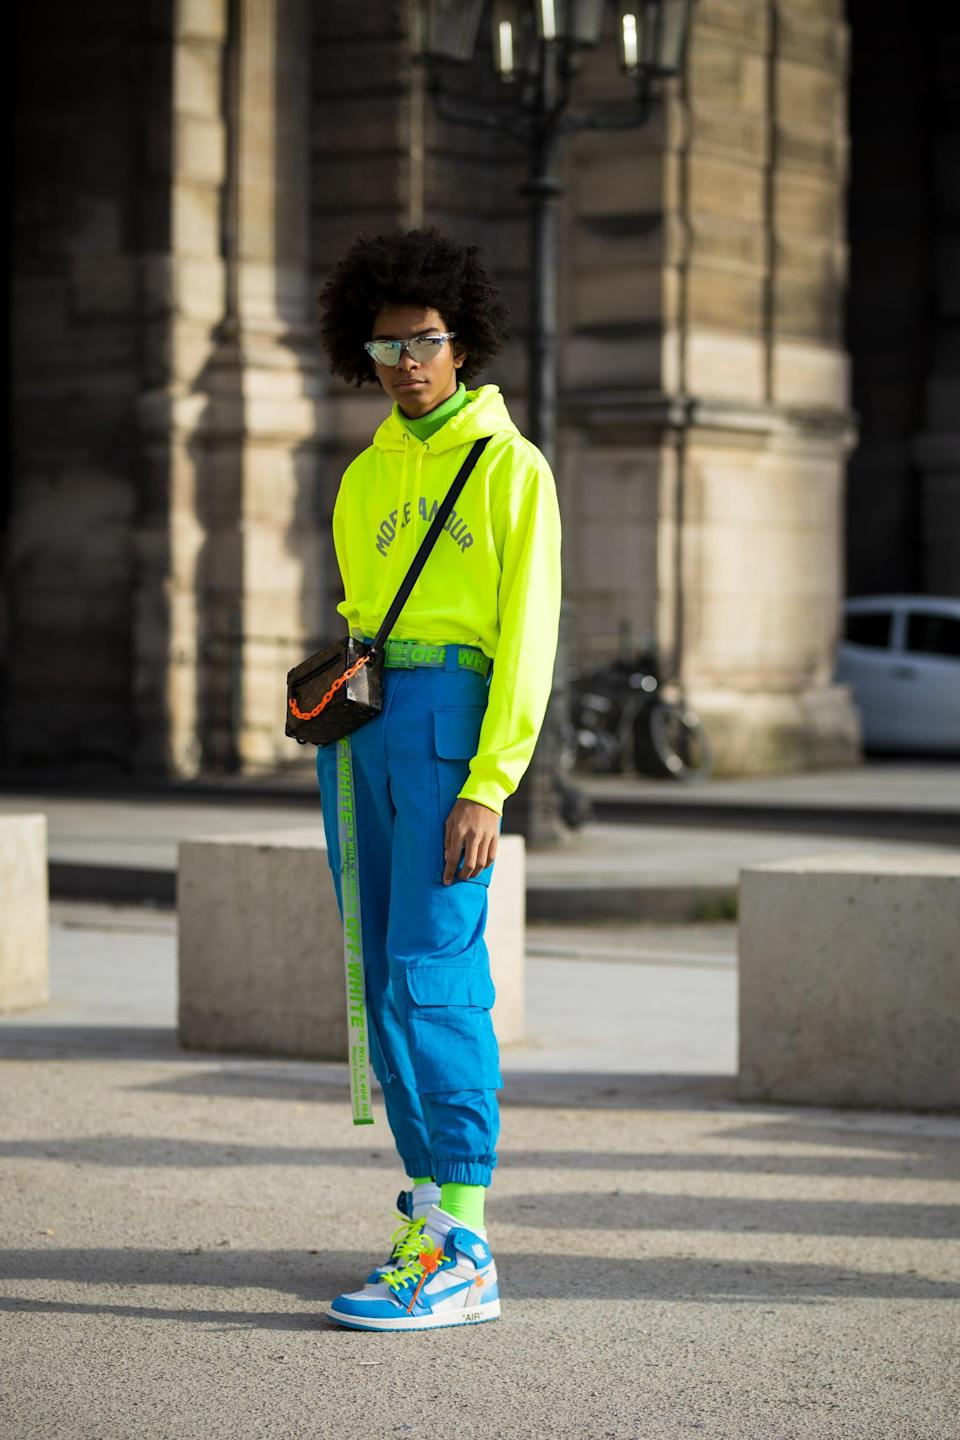 <p>Neon colorways are one sure-fire way to keep the cargo-pant look fresh for a new season. Just add an ultrabright hoodie or tee to stay on theme. </p>